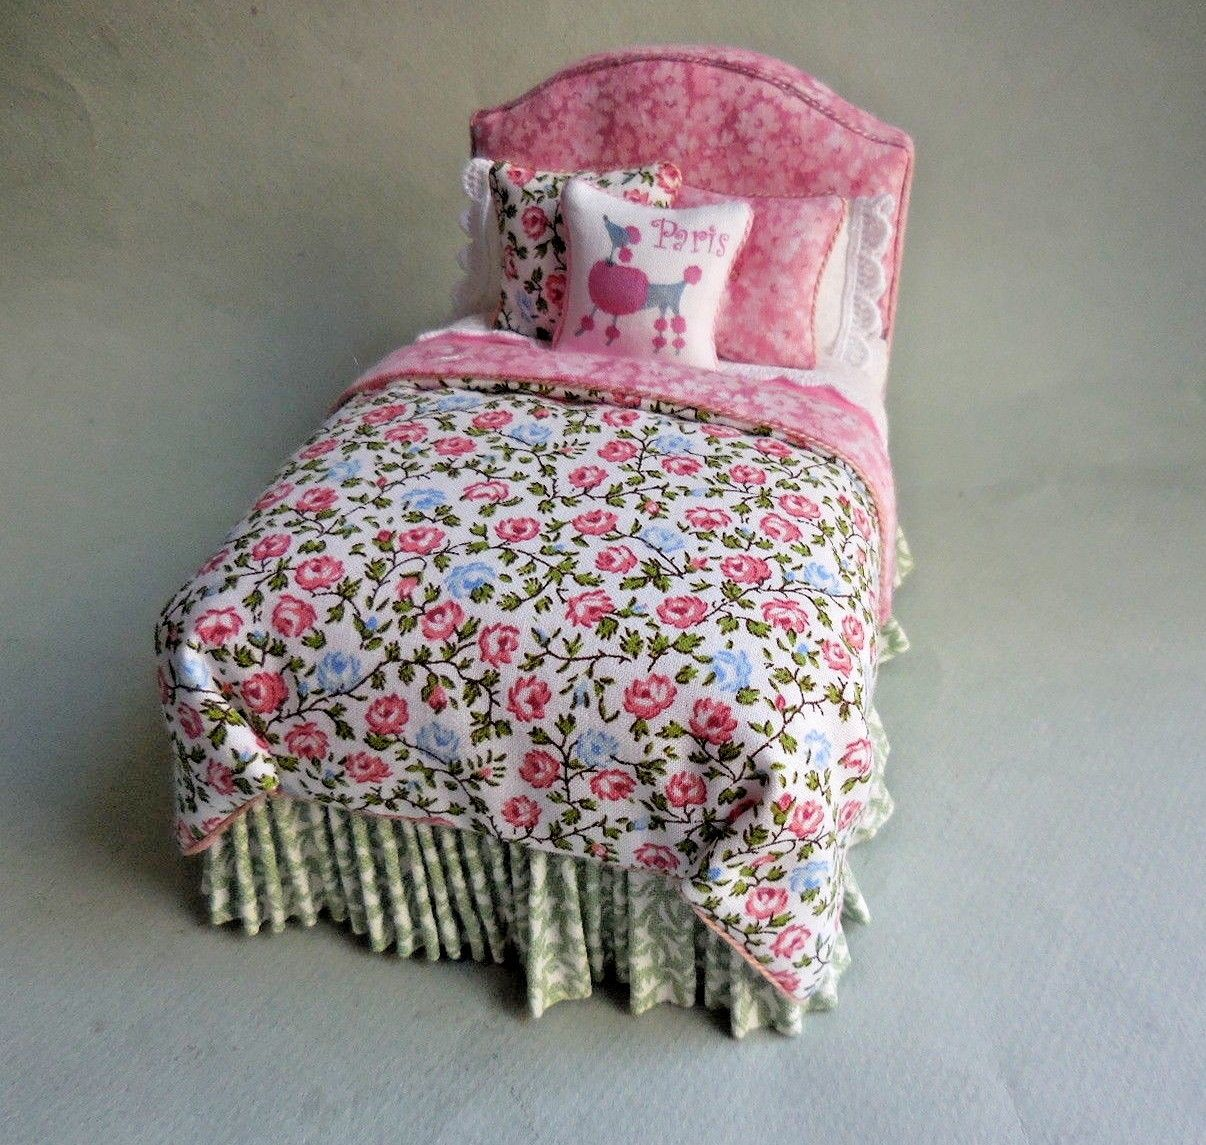 GARDEN FOLLY TWIN BED